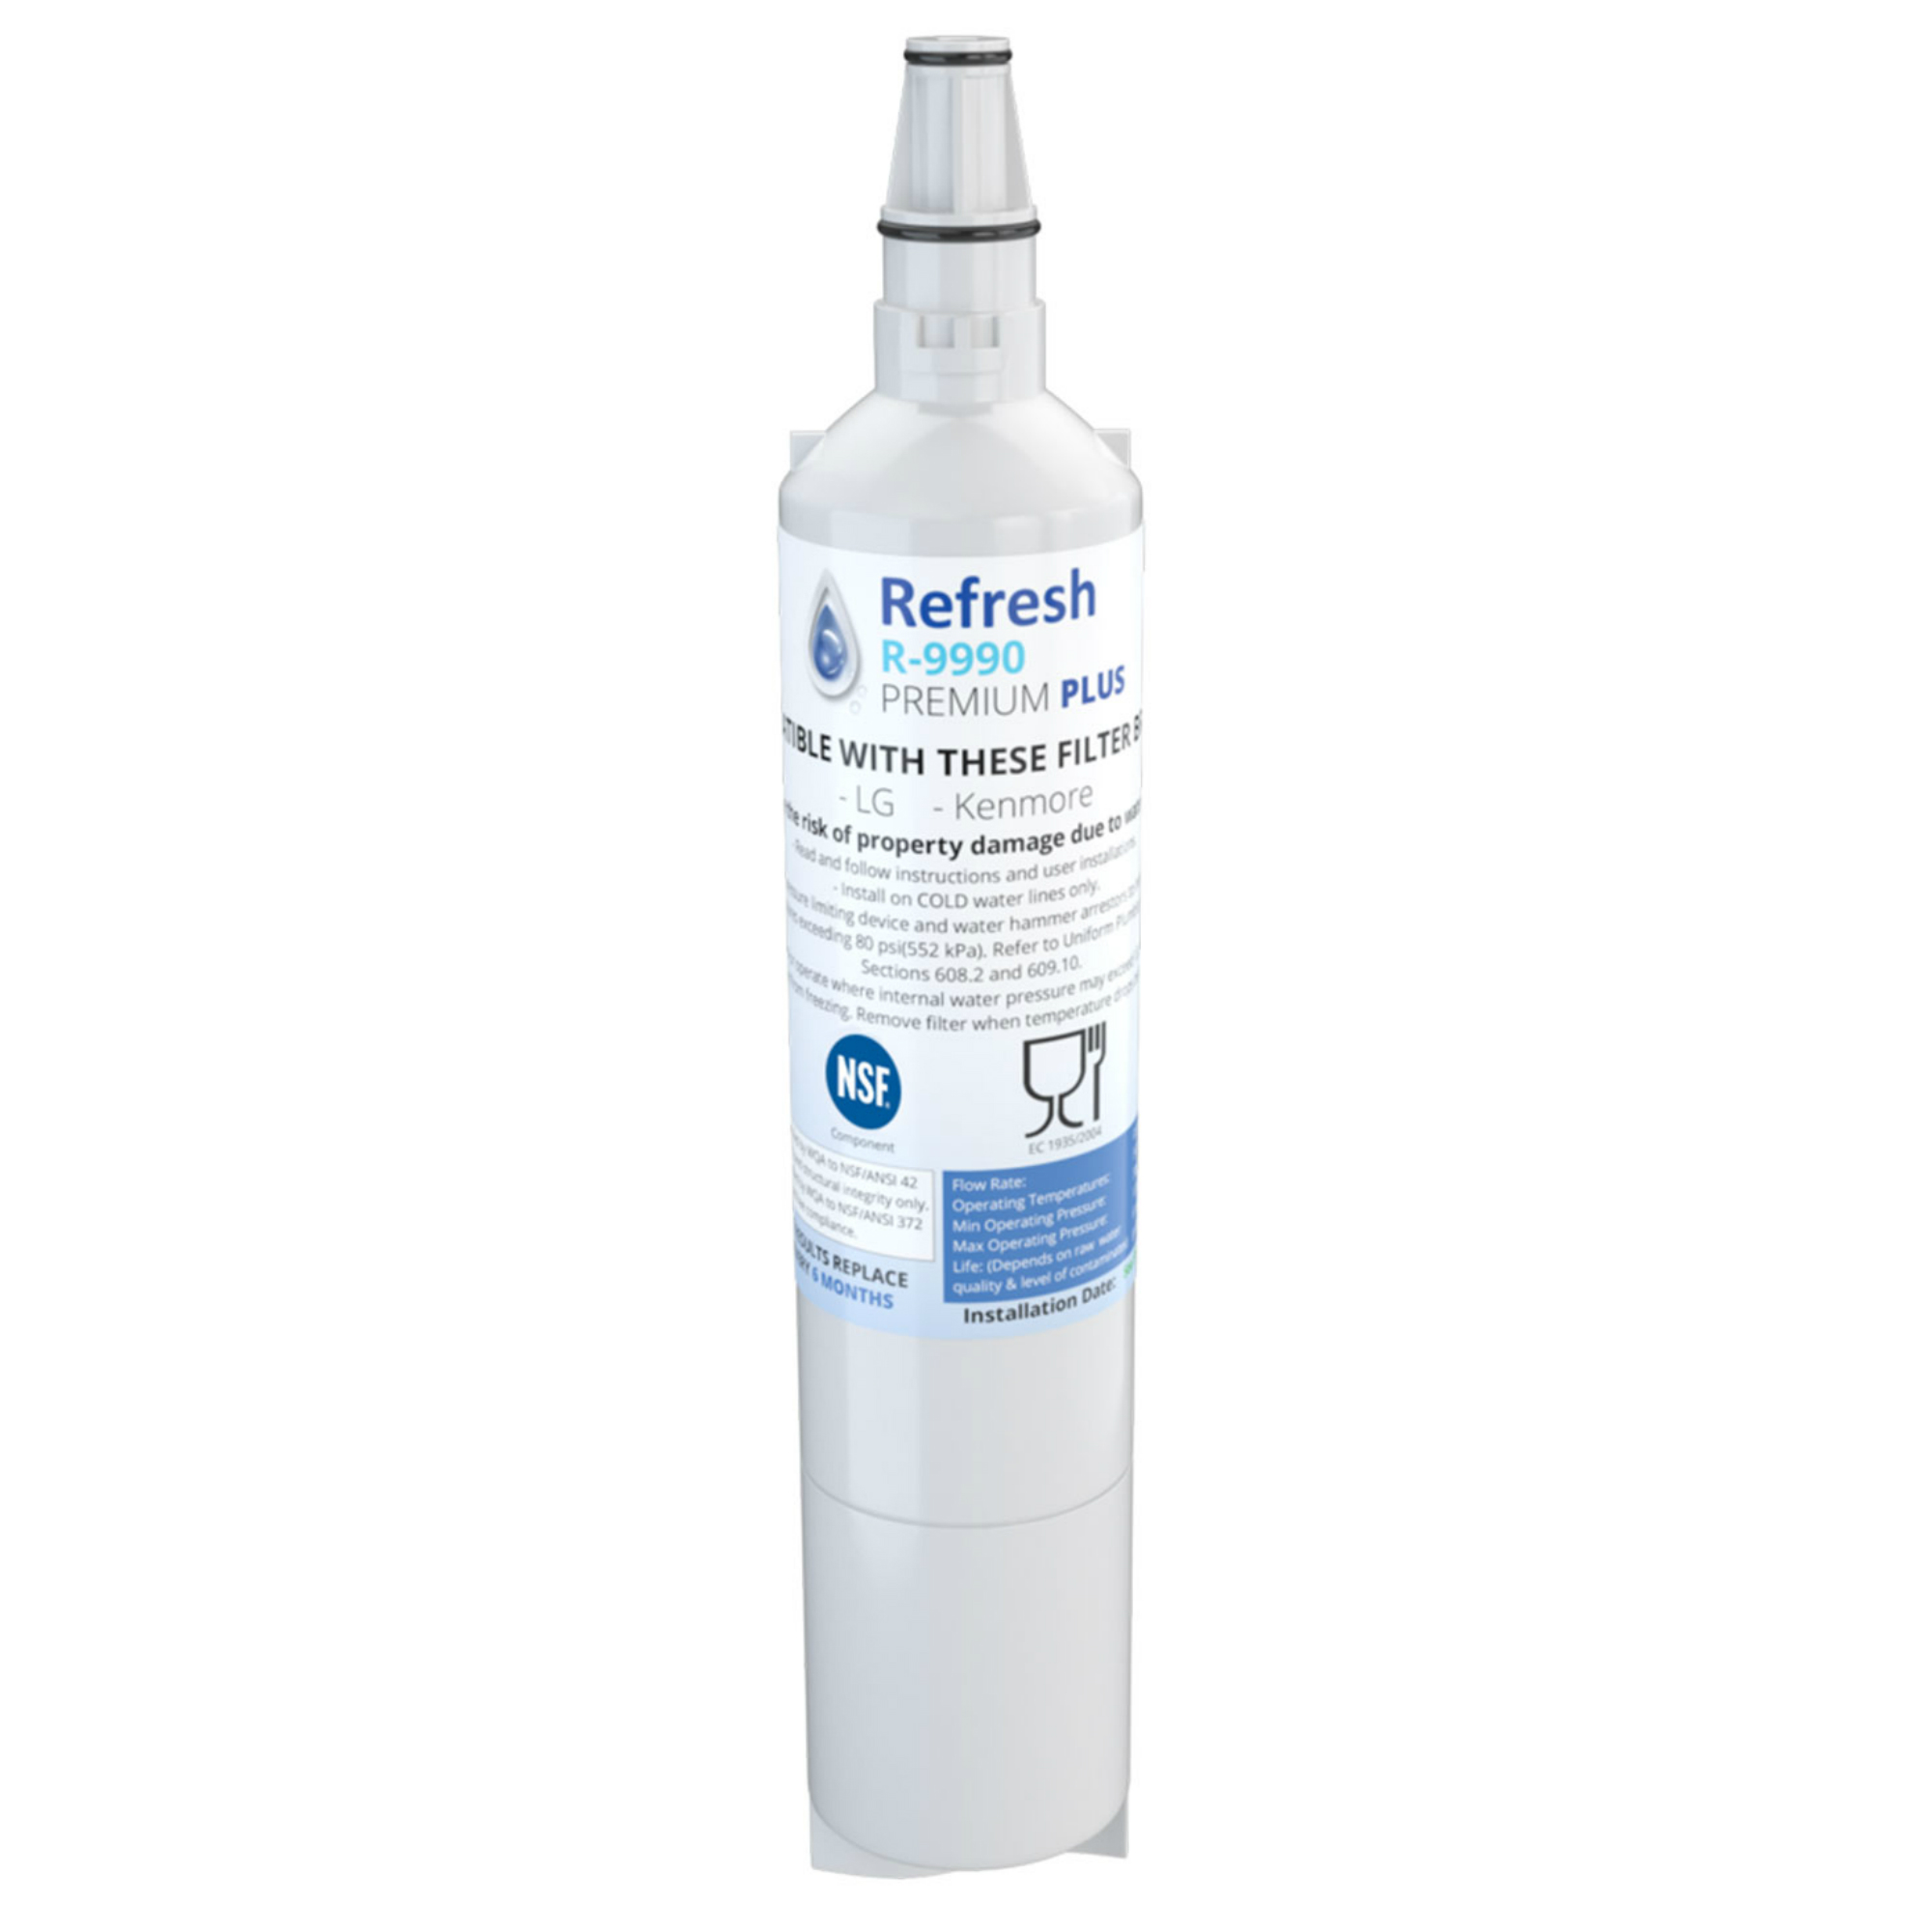 Refresh Replacement Water Filter 6 Pack Fits Samsung DWF-11 Refrigerators